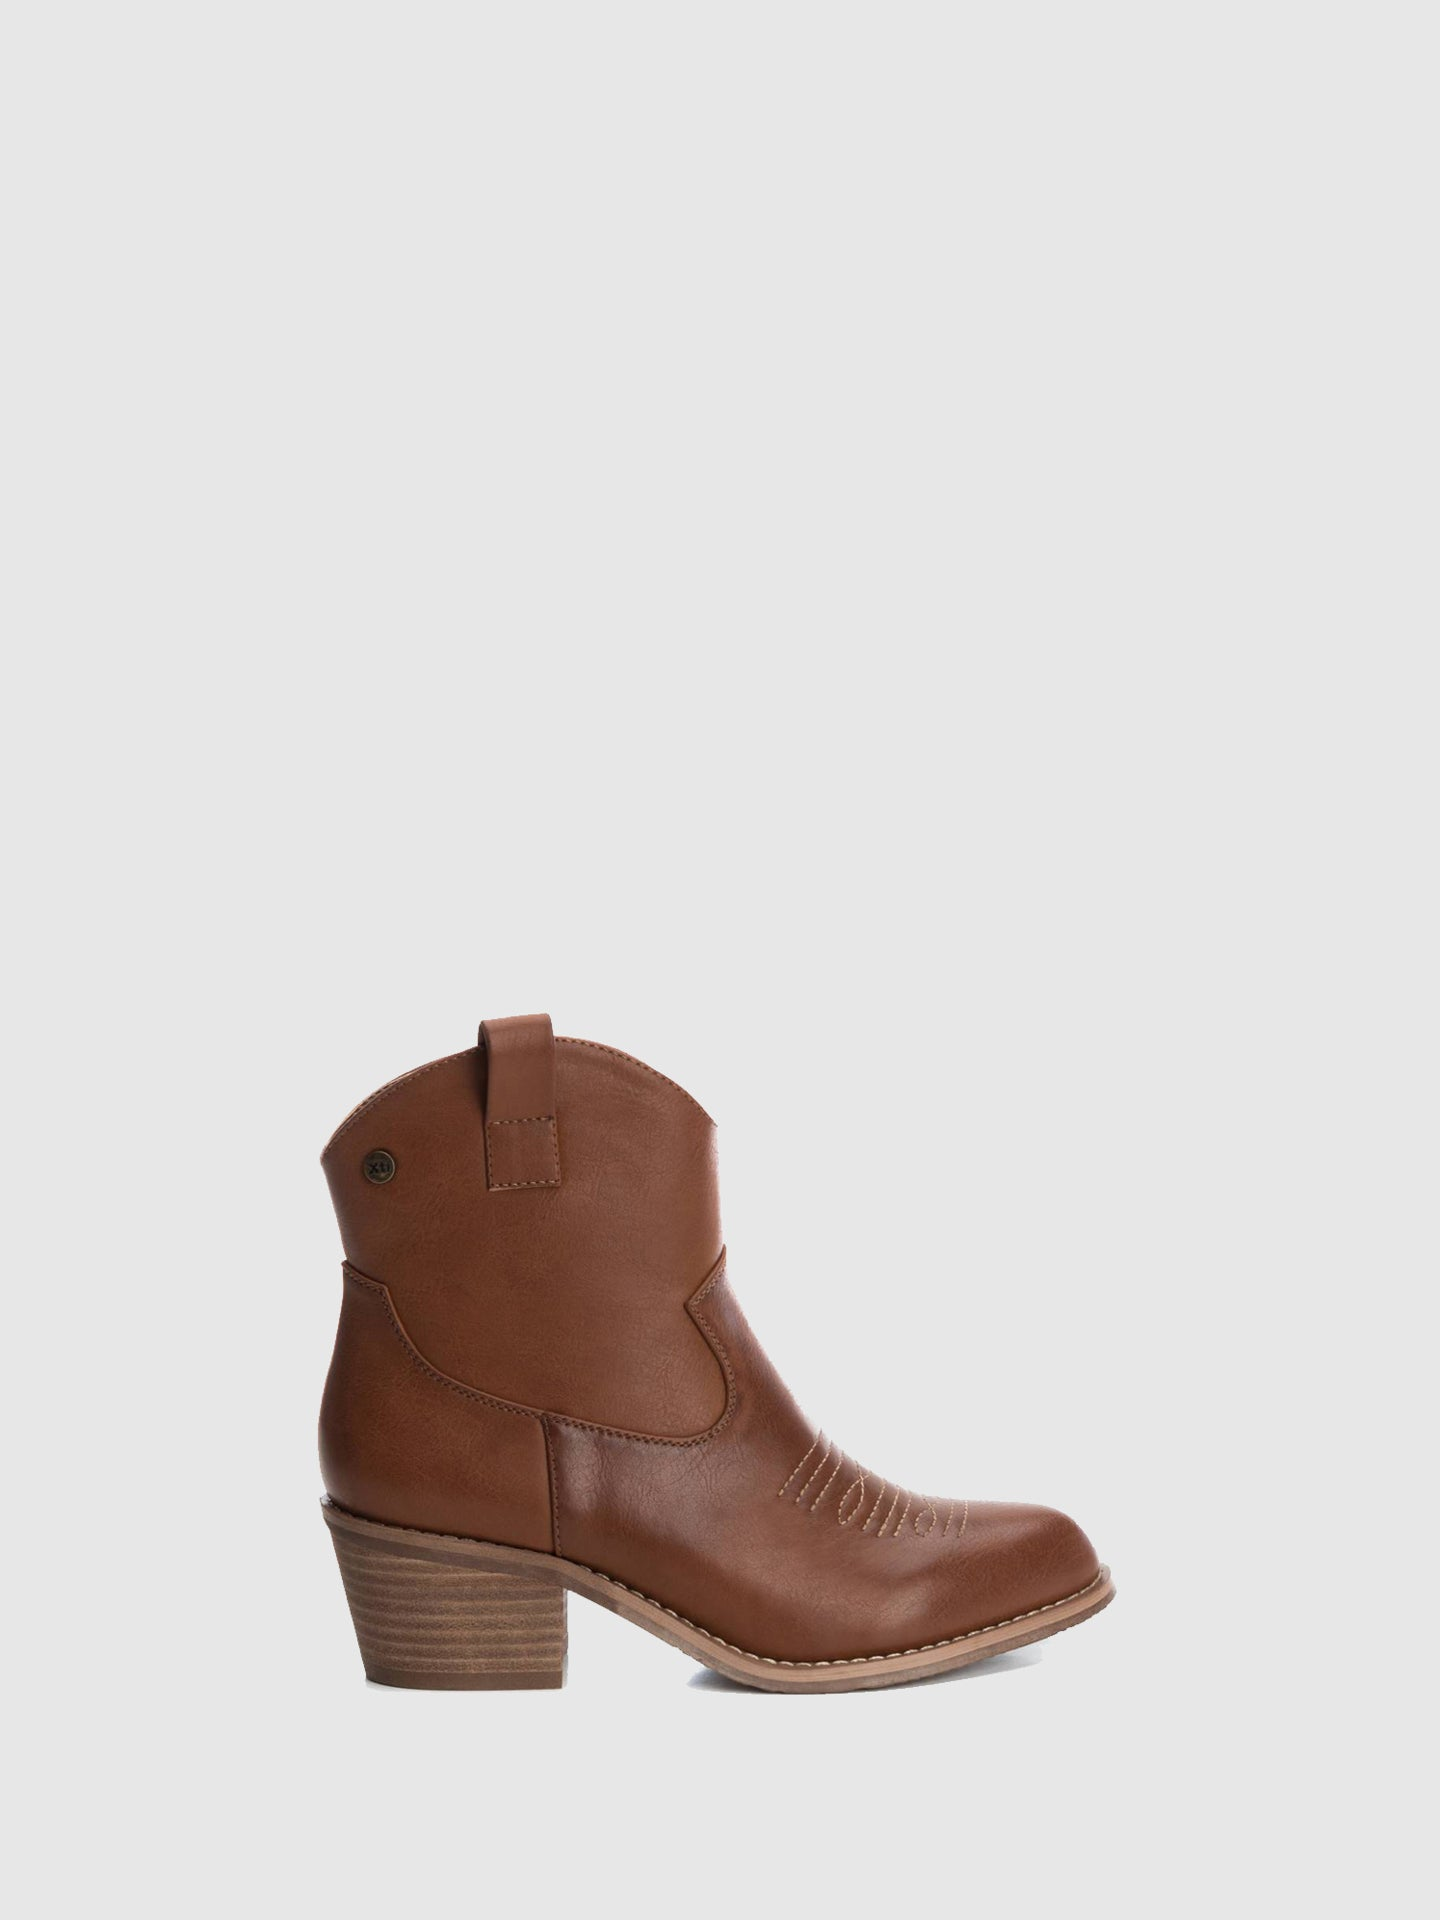 XTI Wheat Cowboy Ankle Boots